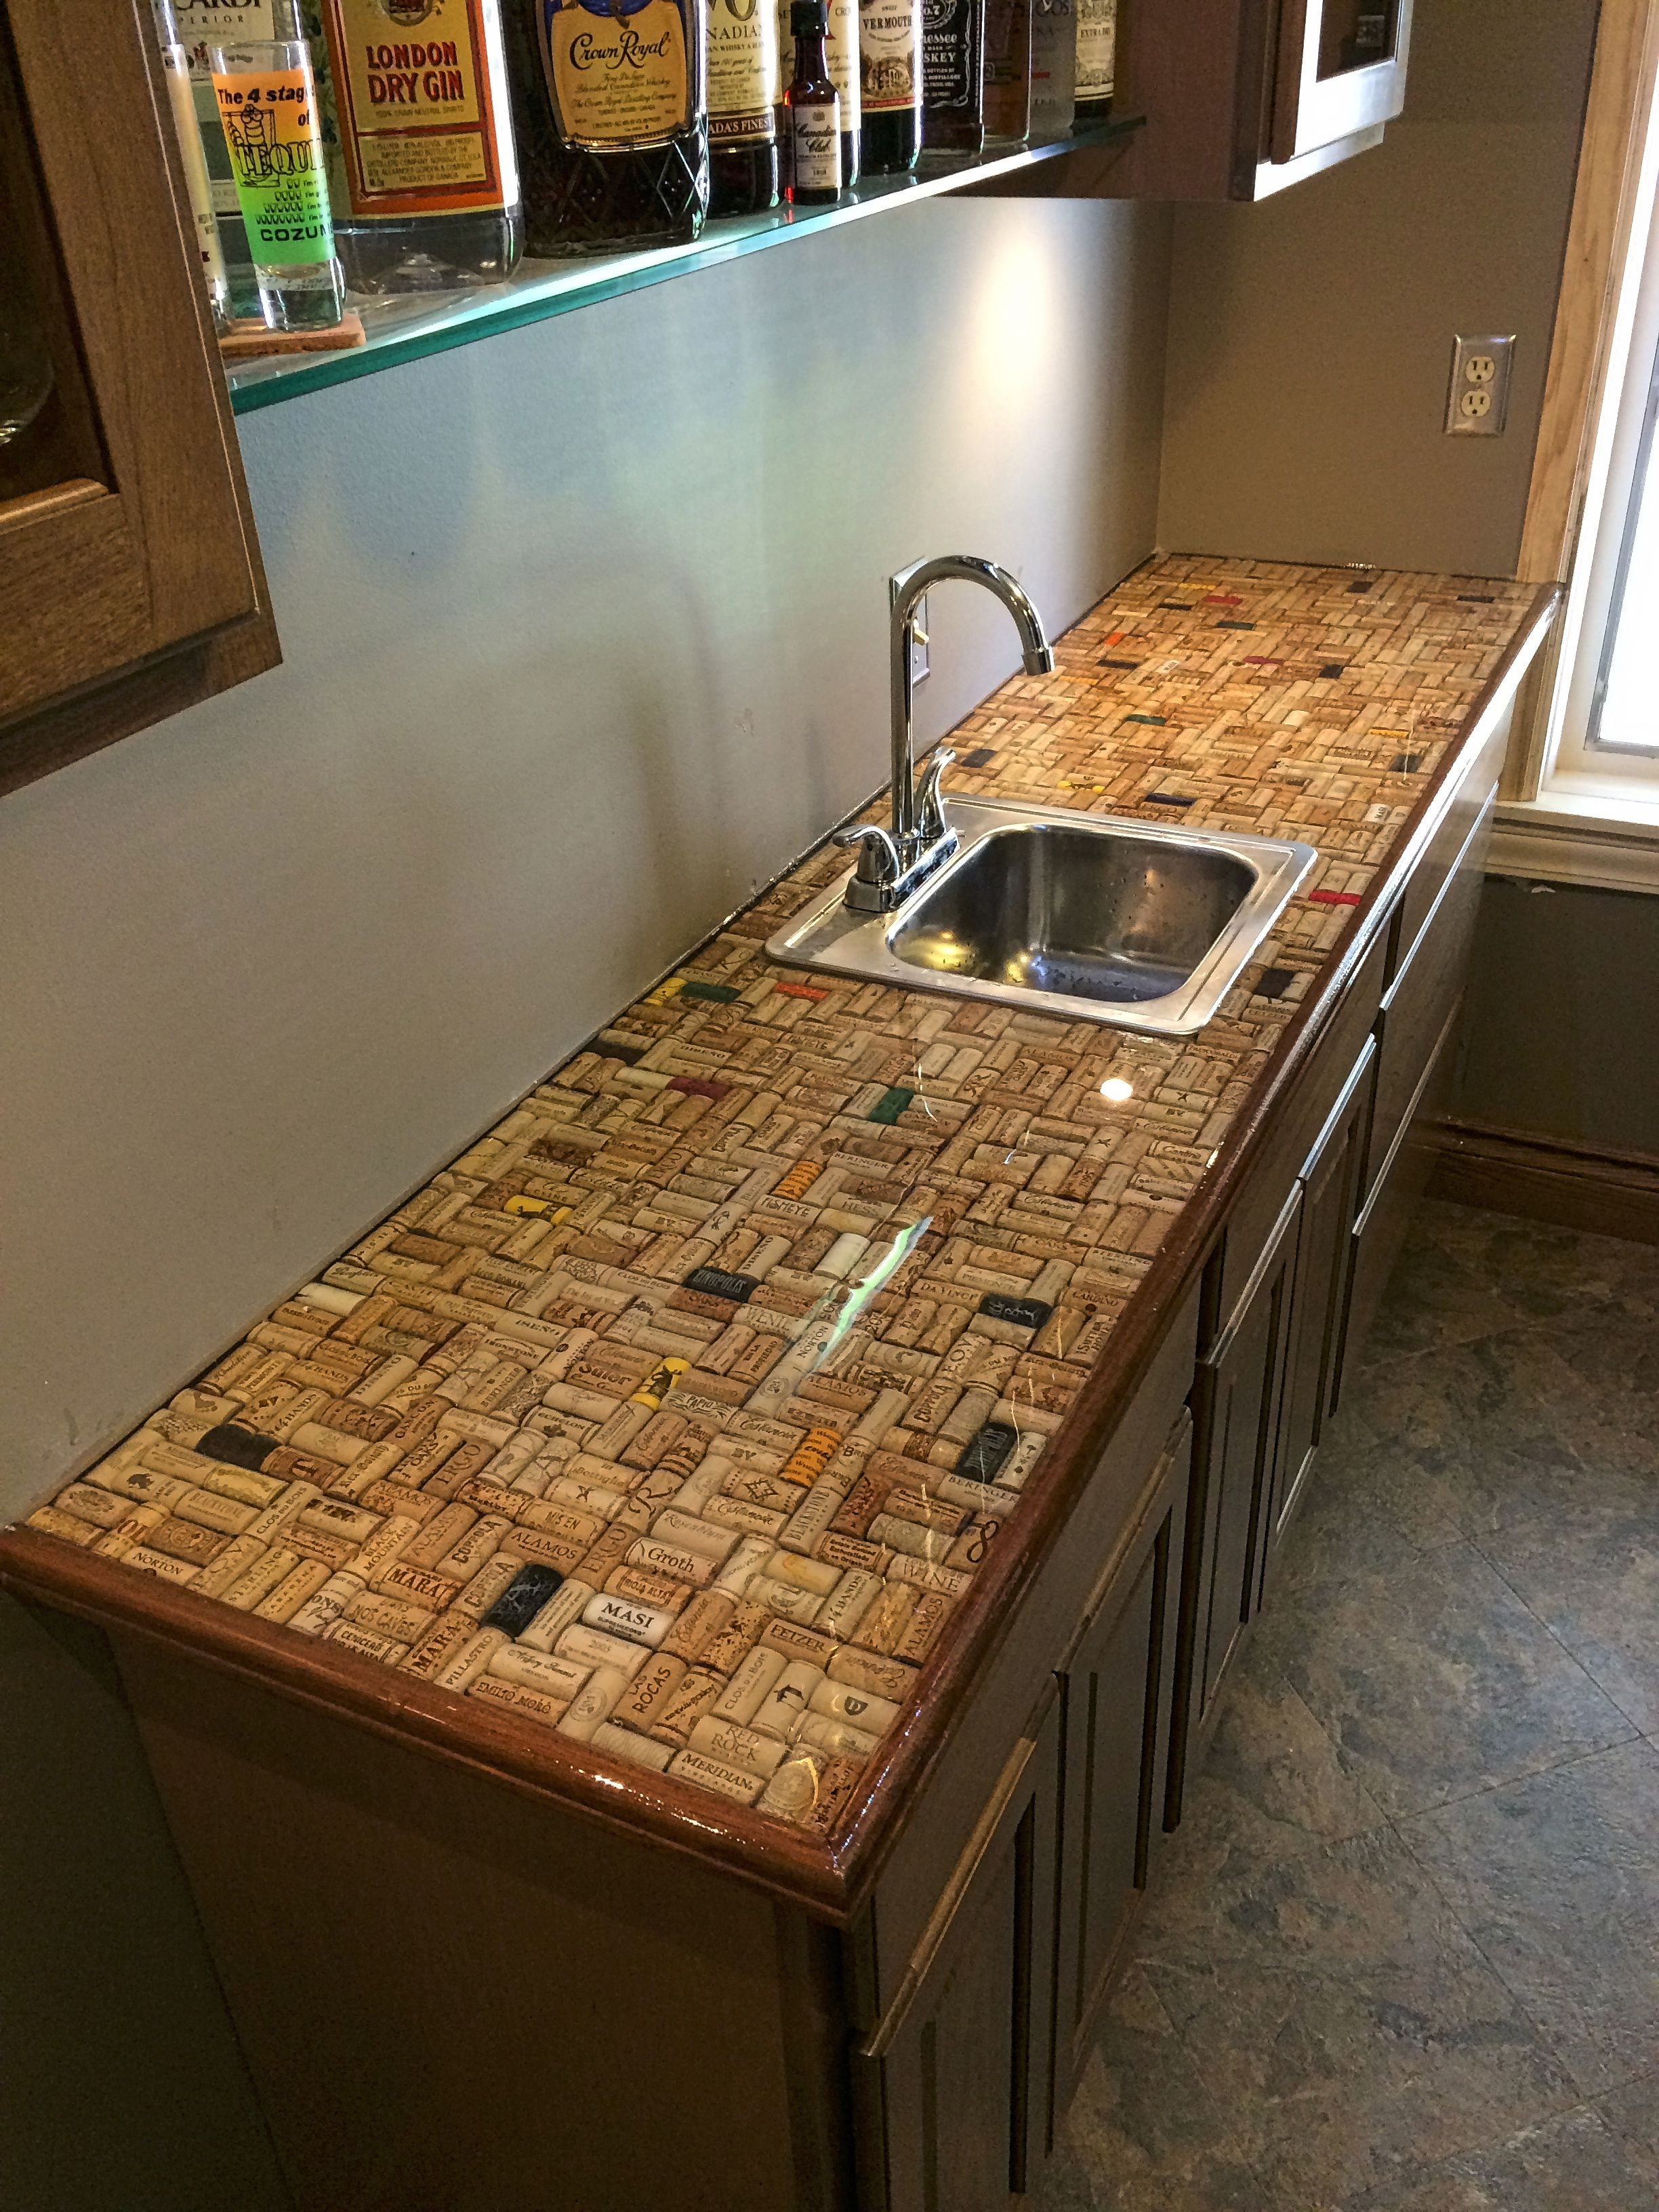 Bartop epoxy epoxy resin coating epoxy bar tops for Wine cork bar top